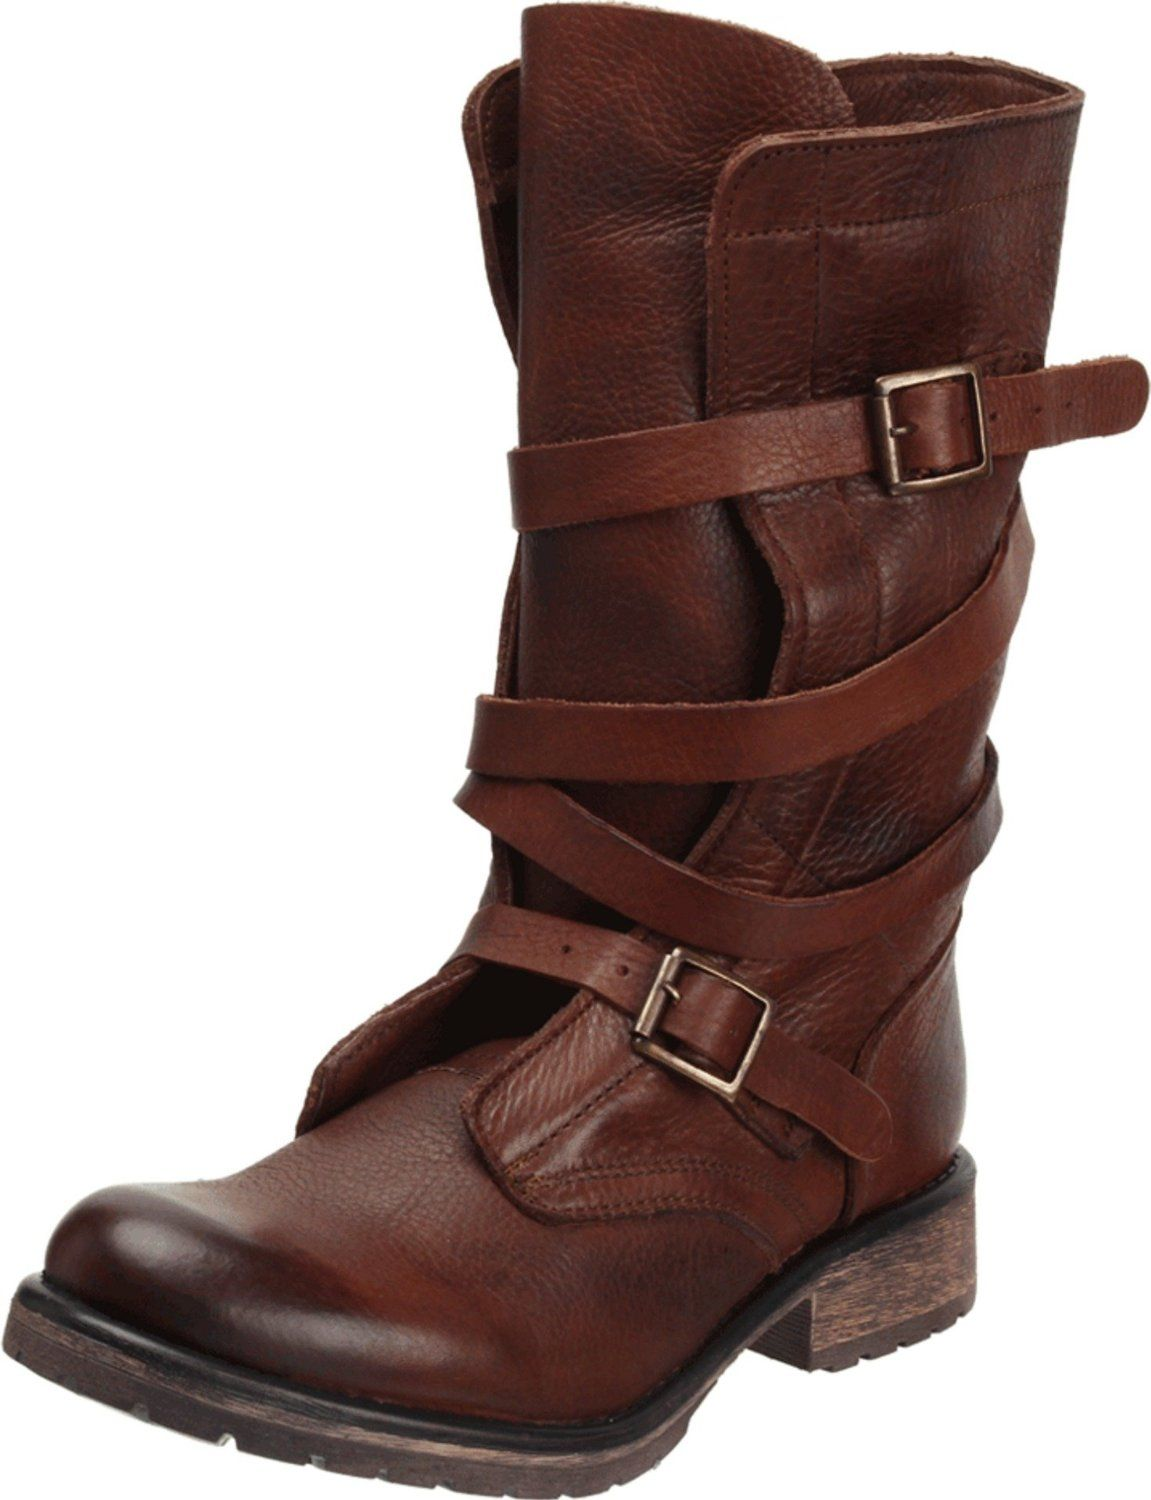 steve madden boots fashion style pinterest schuhe und deins. Black Bedroom Furniture Sets. Home Design Ideas